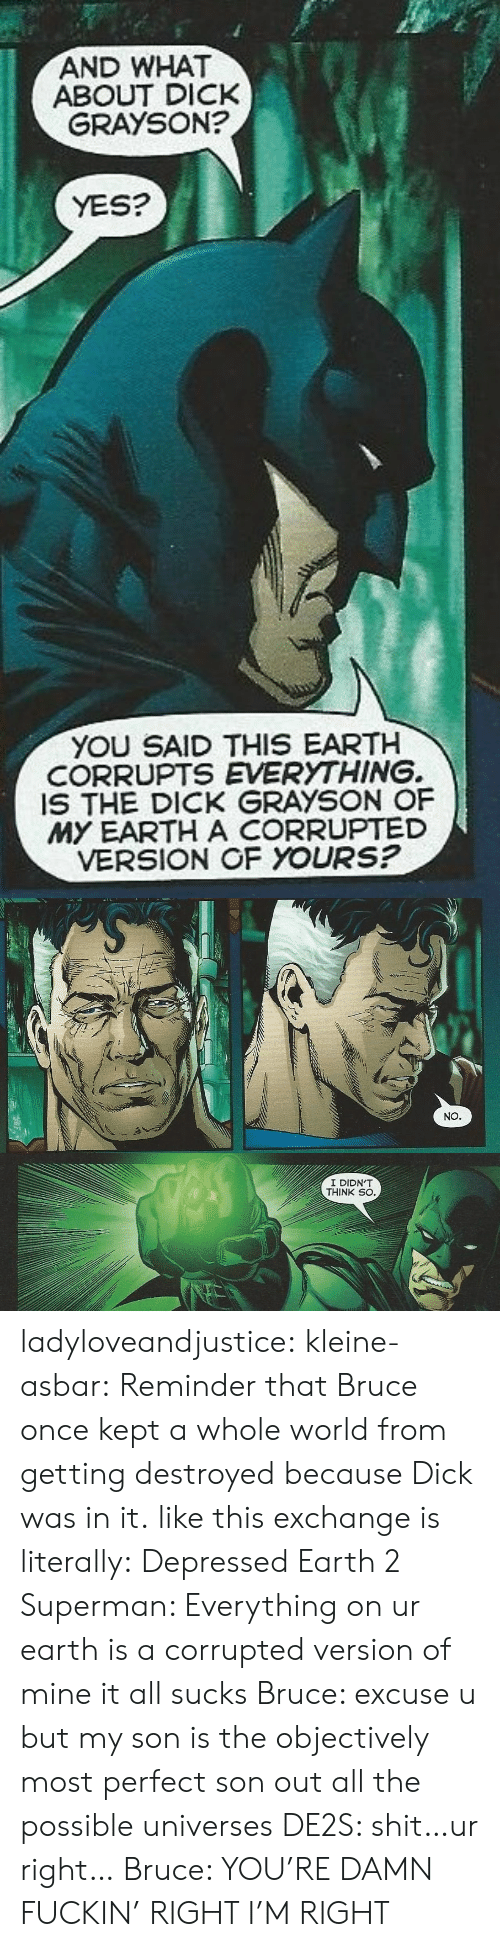 objectively: AND WHAT  GRAYSON?  ABOUT DICK  YES?  YOU SAID THIS EARTH  CORRUPTS EVERYTHING.  IS THE DICK GRAYSON OF  MY EARTH A CORRUPTED  VERSION OF YOURS?   NO   I DIDN'T  THINK SO ladyloveandjustice:  kleine-asbar: Reminder that Bruce once kept a whole world from getting destroyed because Dick was in it. like this exchange is literally: Depressed Earth 2 Superman: Everything on ur earth is a corrupted version of mine it all sucks Bruce: excuse u but my son is the objectively most perfect son out all the possible universes DE2S: shit…ur right… Bruce: YOU'RE DAMN FUCKIN' RIGHT I'M RIGHT